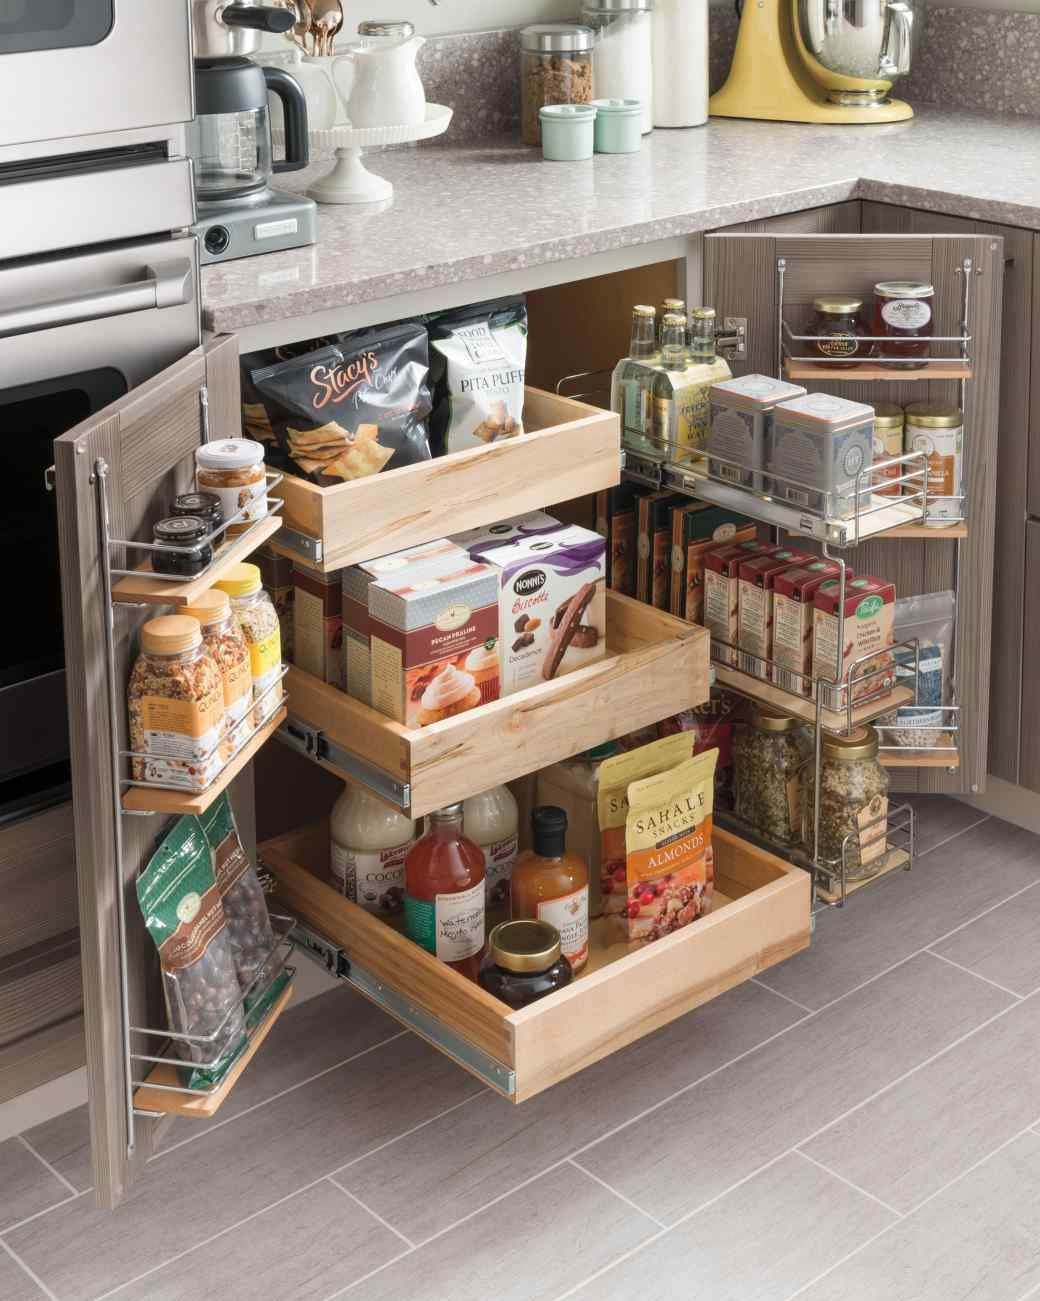 Small Kitchen Storage Ideas For A More Efficient Space Small Kitchen Storage Kitchen Design Small Kitchen Remodel Small